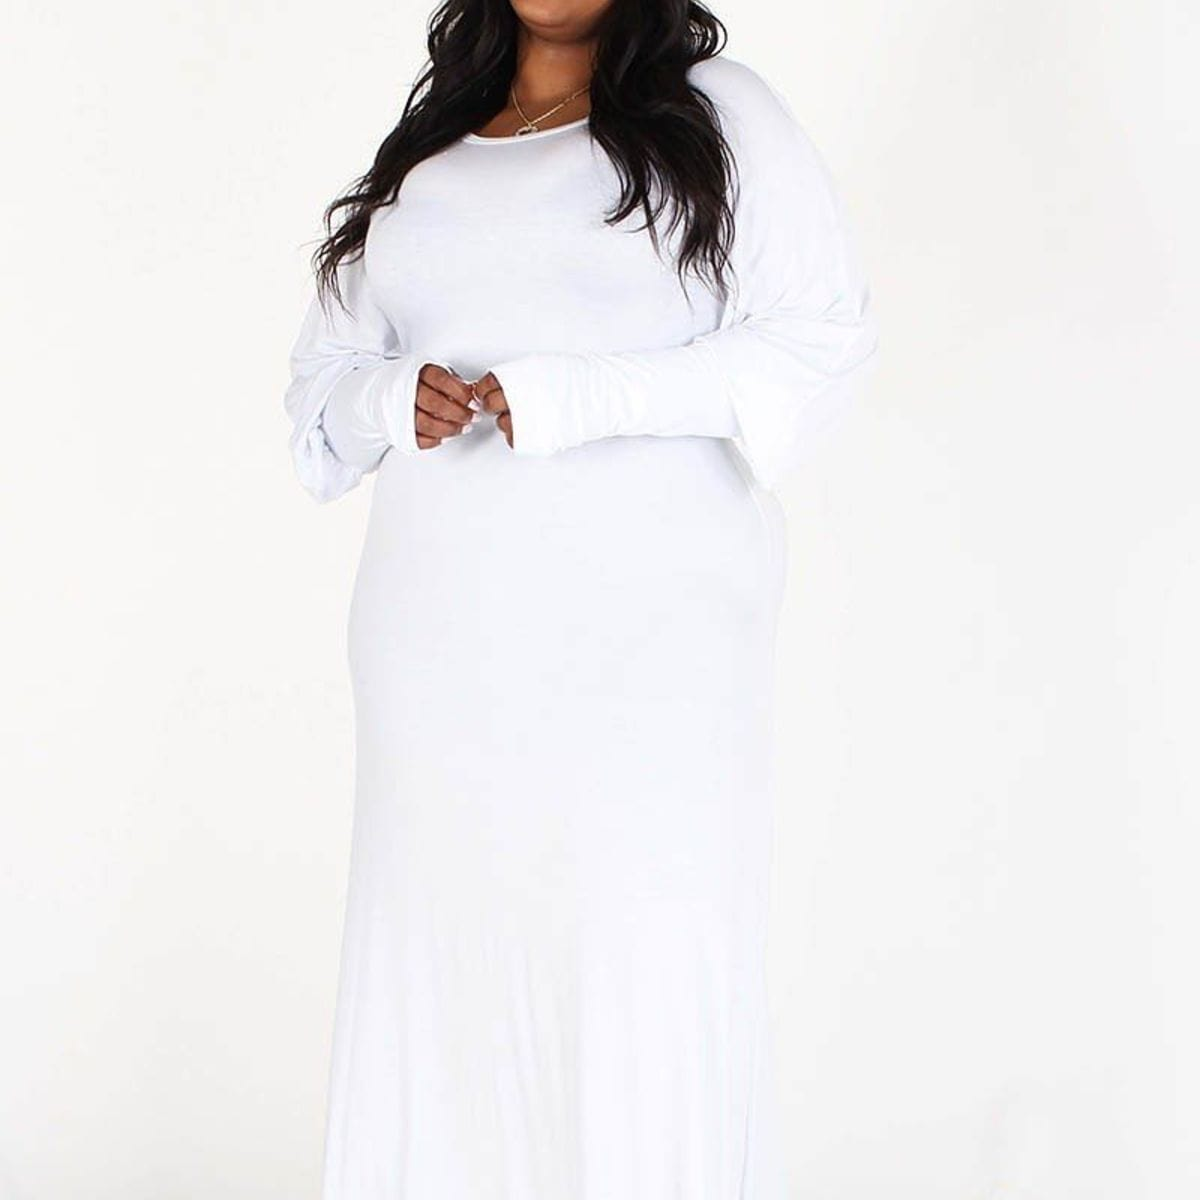 PLUS Long bubble sleeves with extended cuffs and thumbhole, round Neck